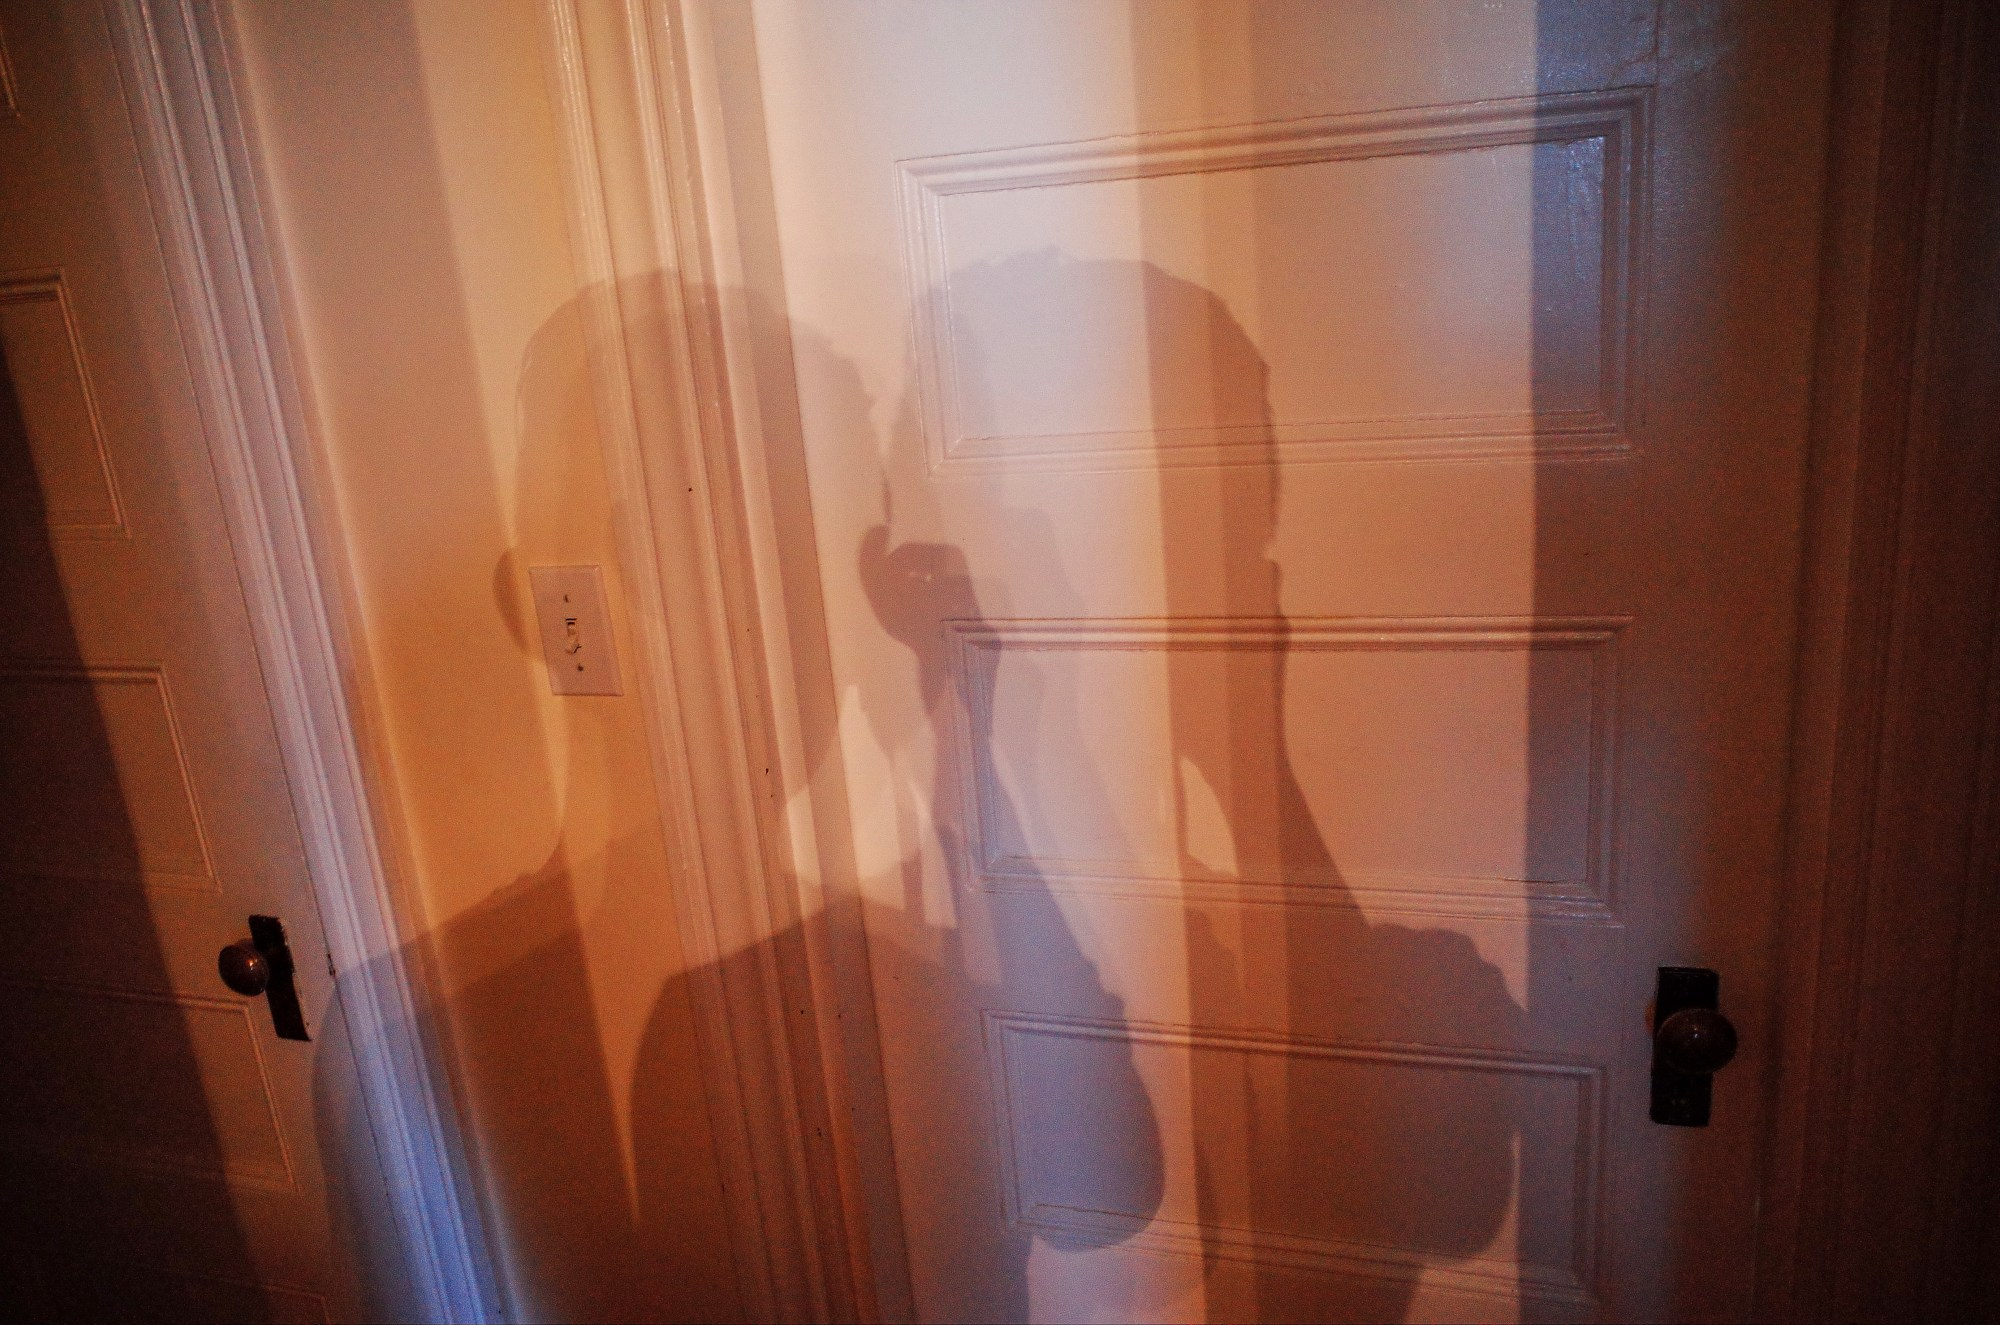 Shadow selfie. Boston, 2018